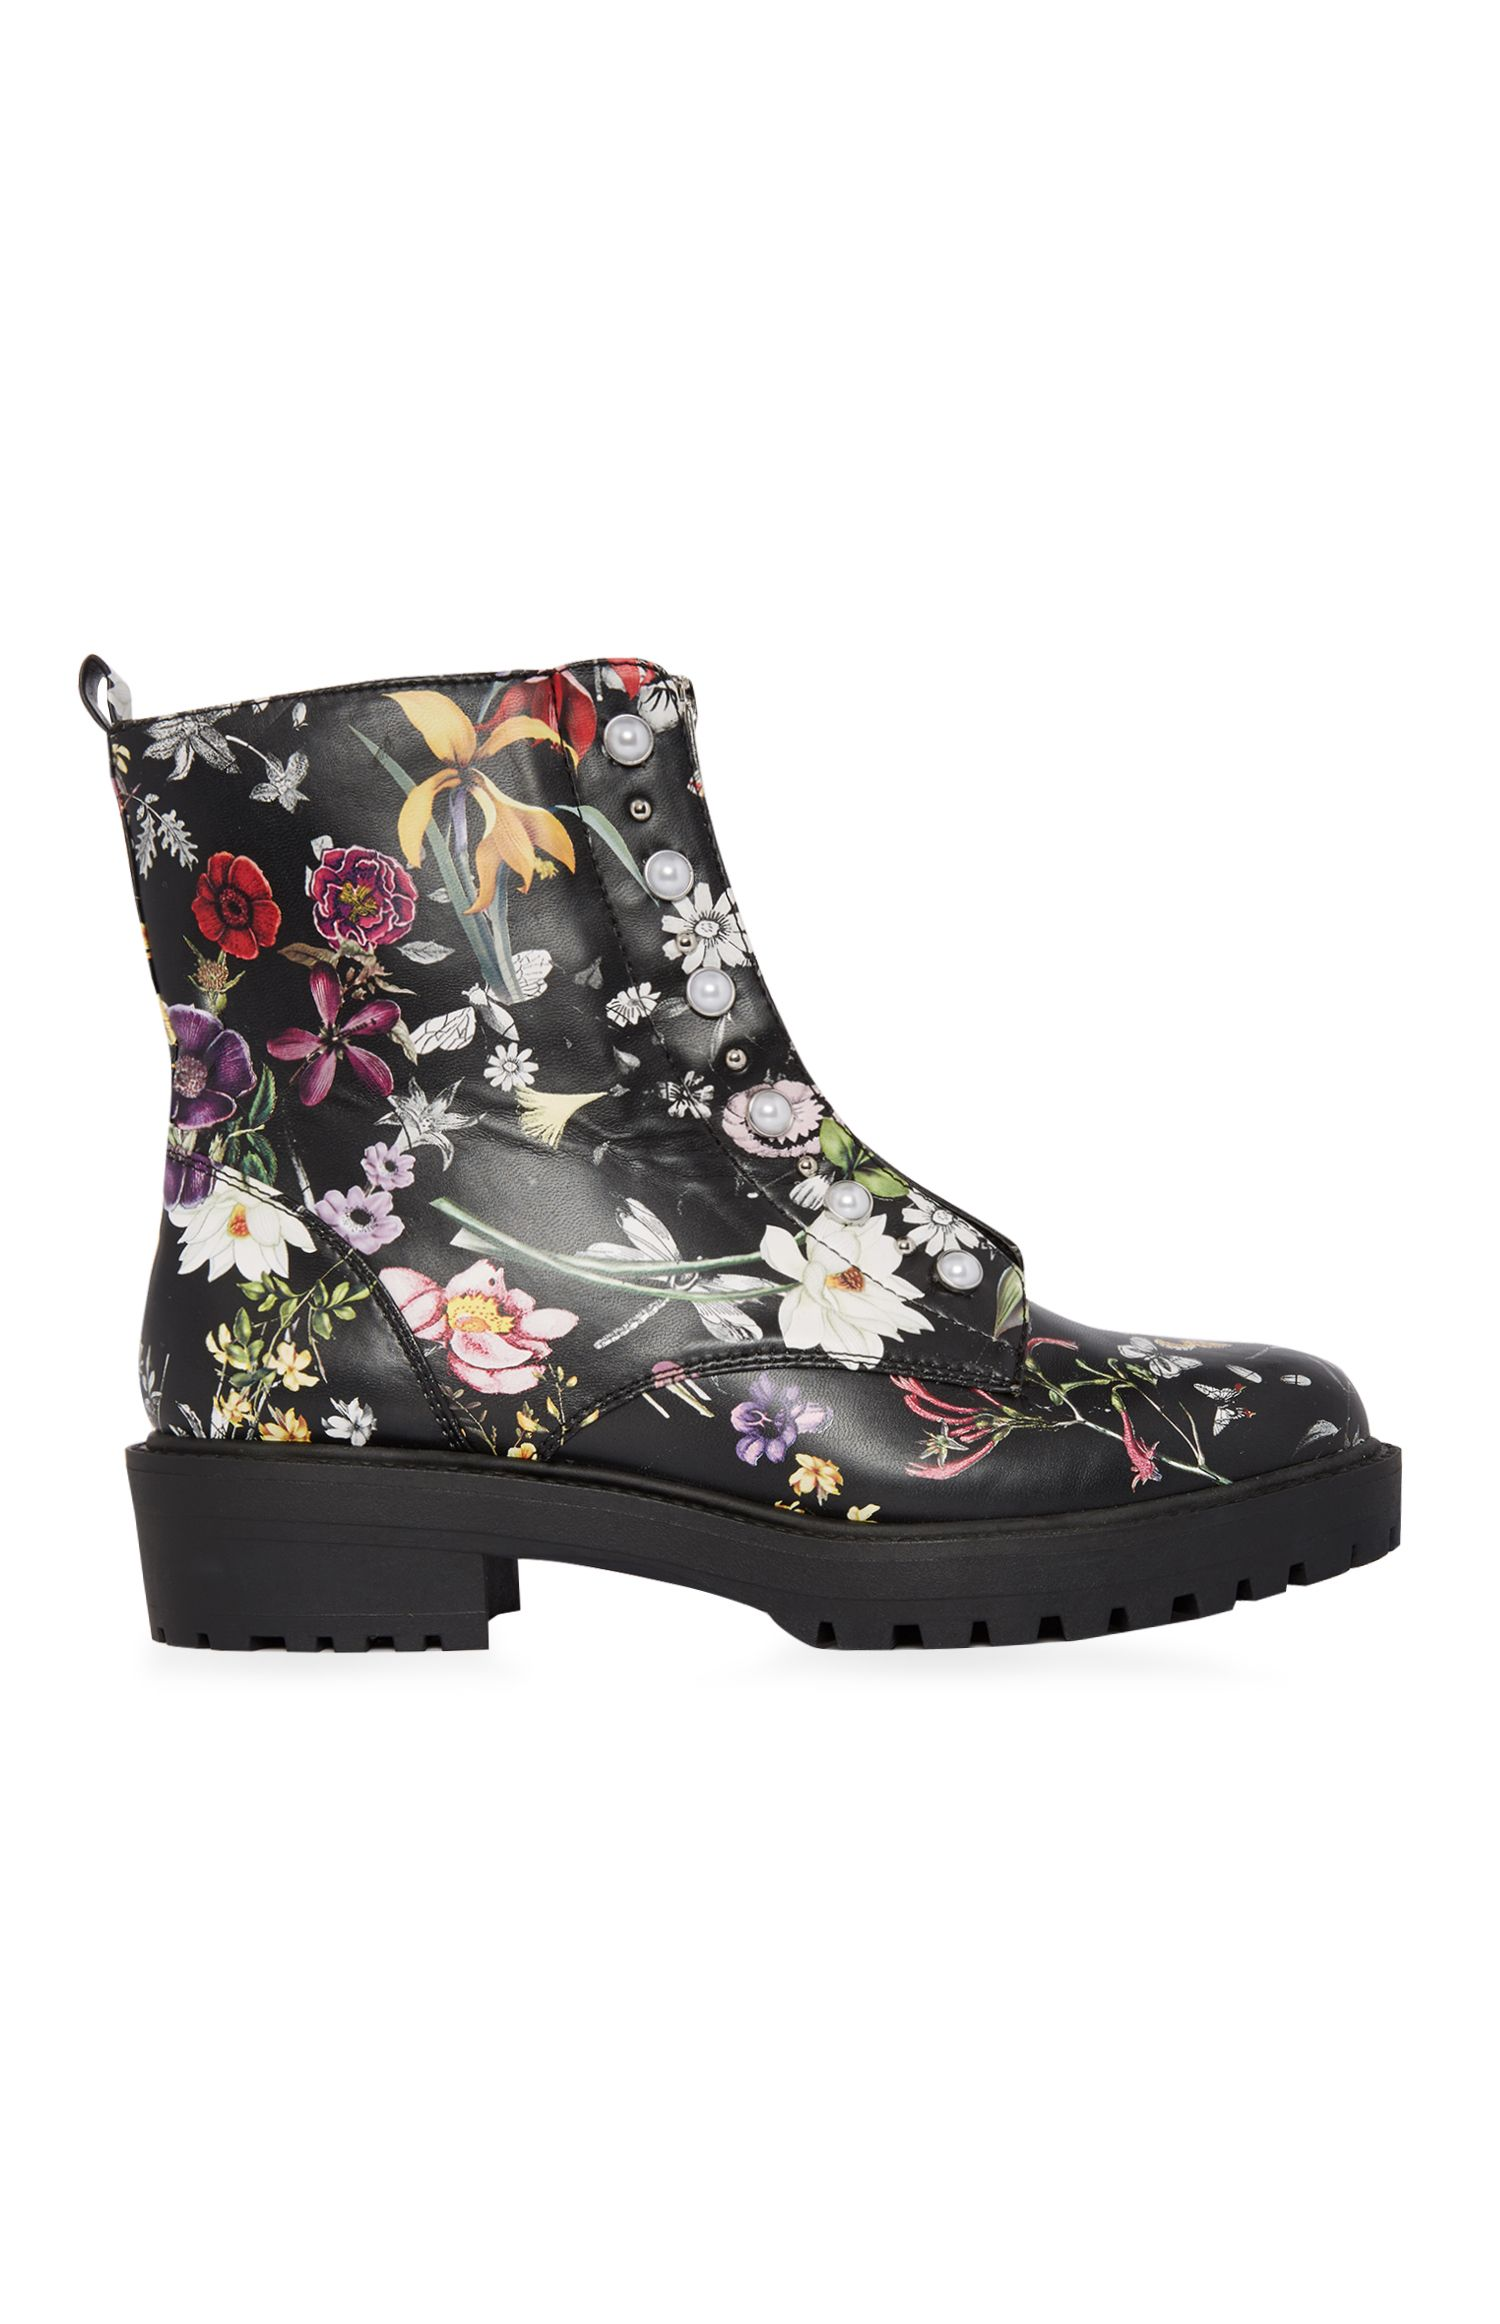 63ecd059129 The Best Primark Boots To Shop Now | Shoes | Primark boots, Dm boots ...